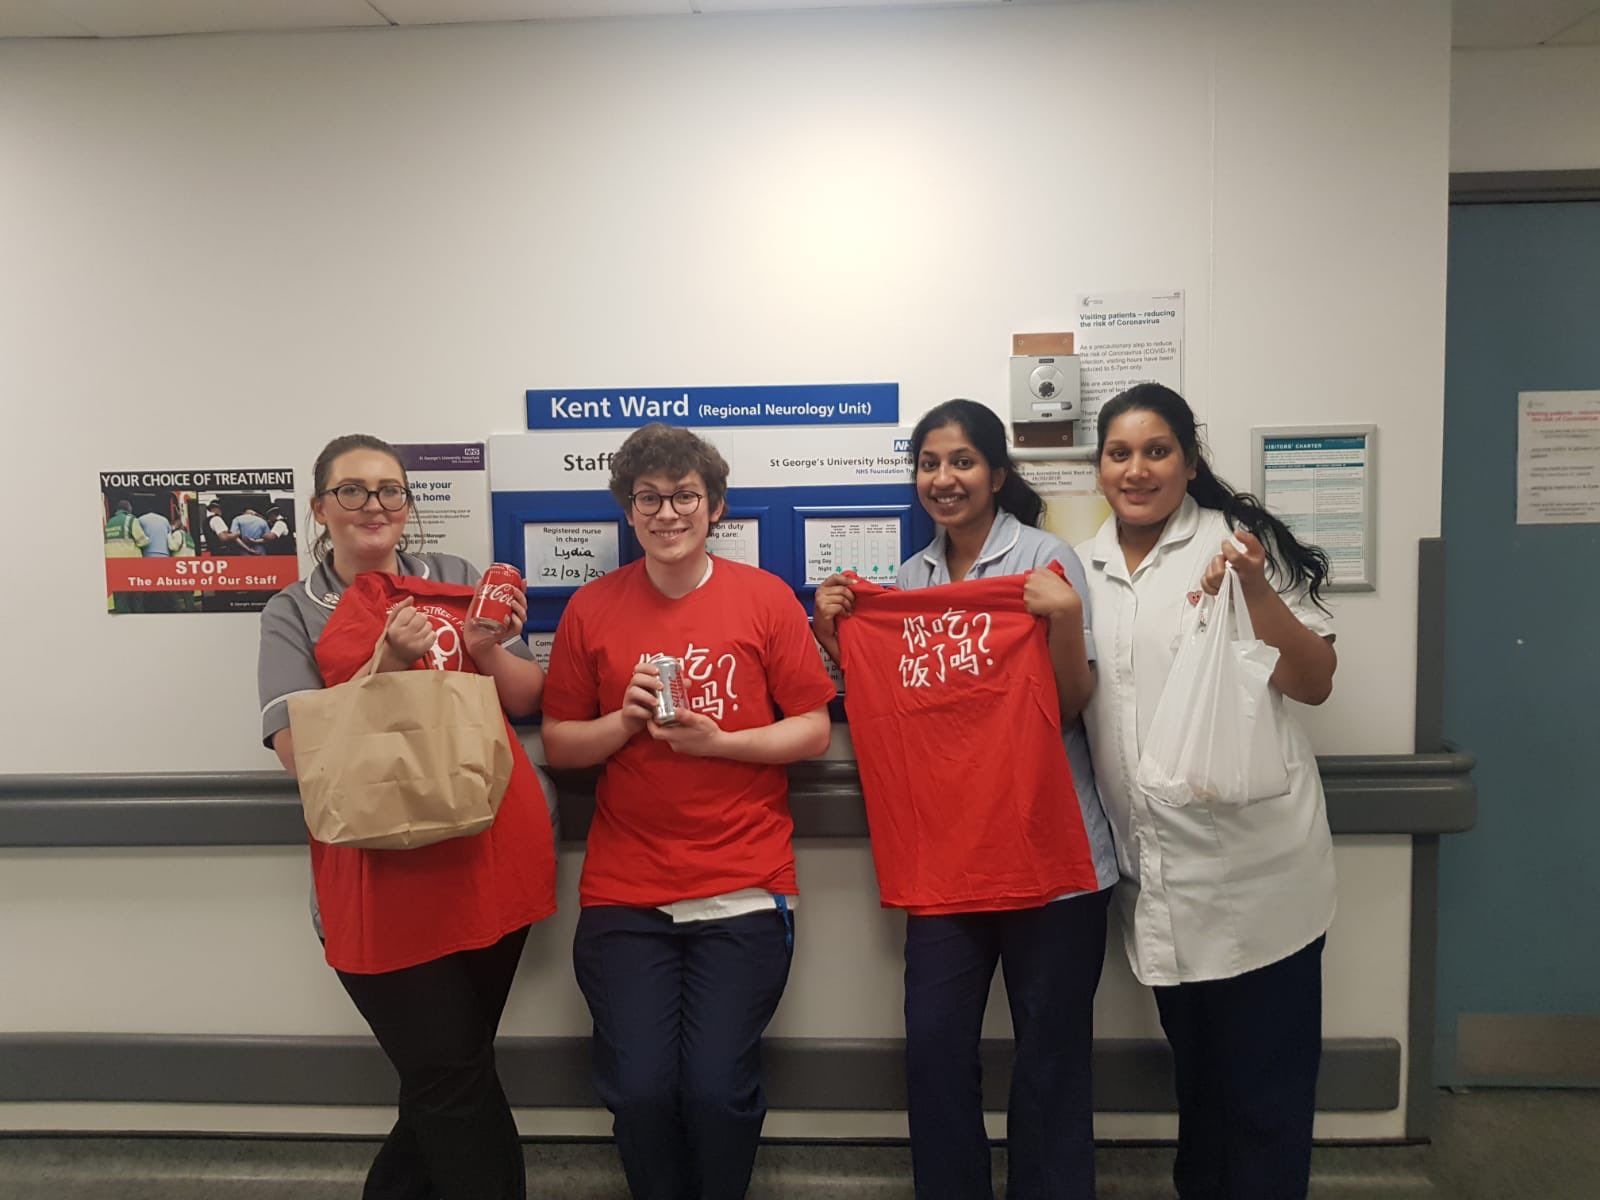 St George's Hospital staff receive takeaway food from the Critical NHS scheme (Photo credit: Critical NHS/Twitter)